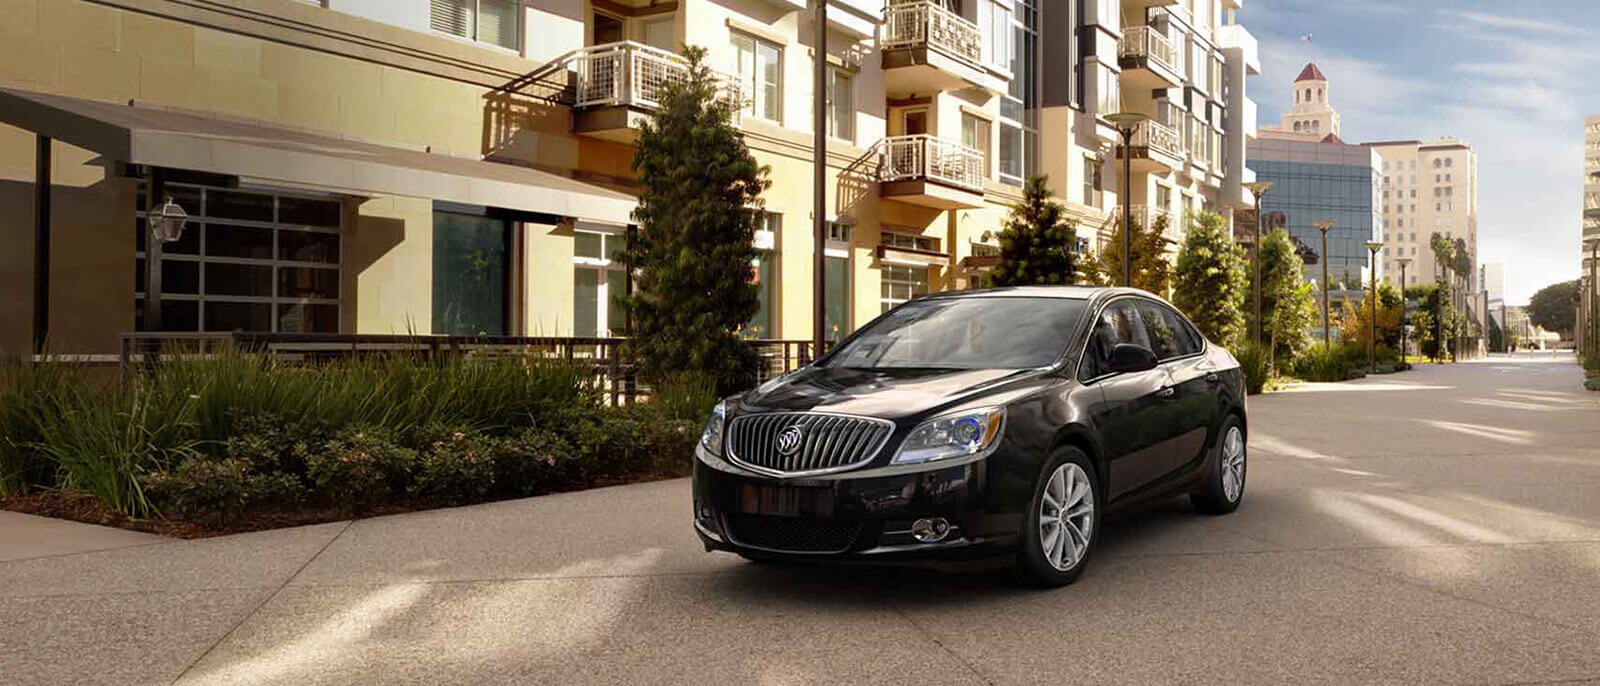 2017 Buick Verano front view